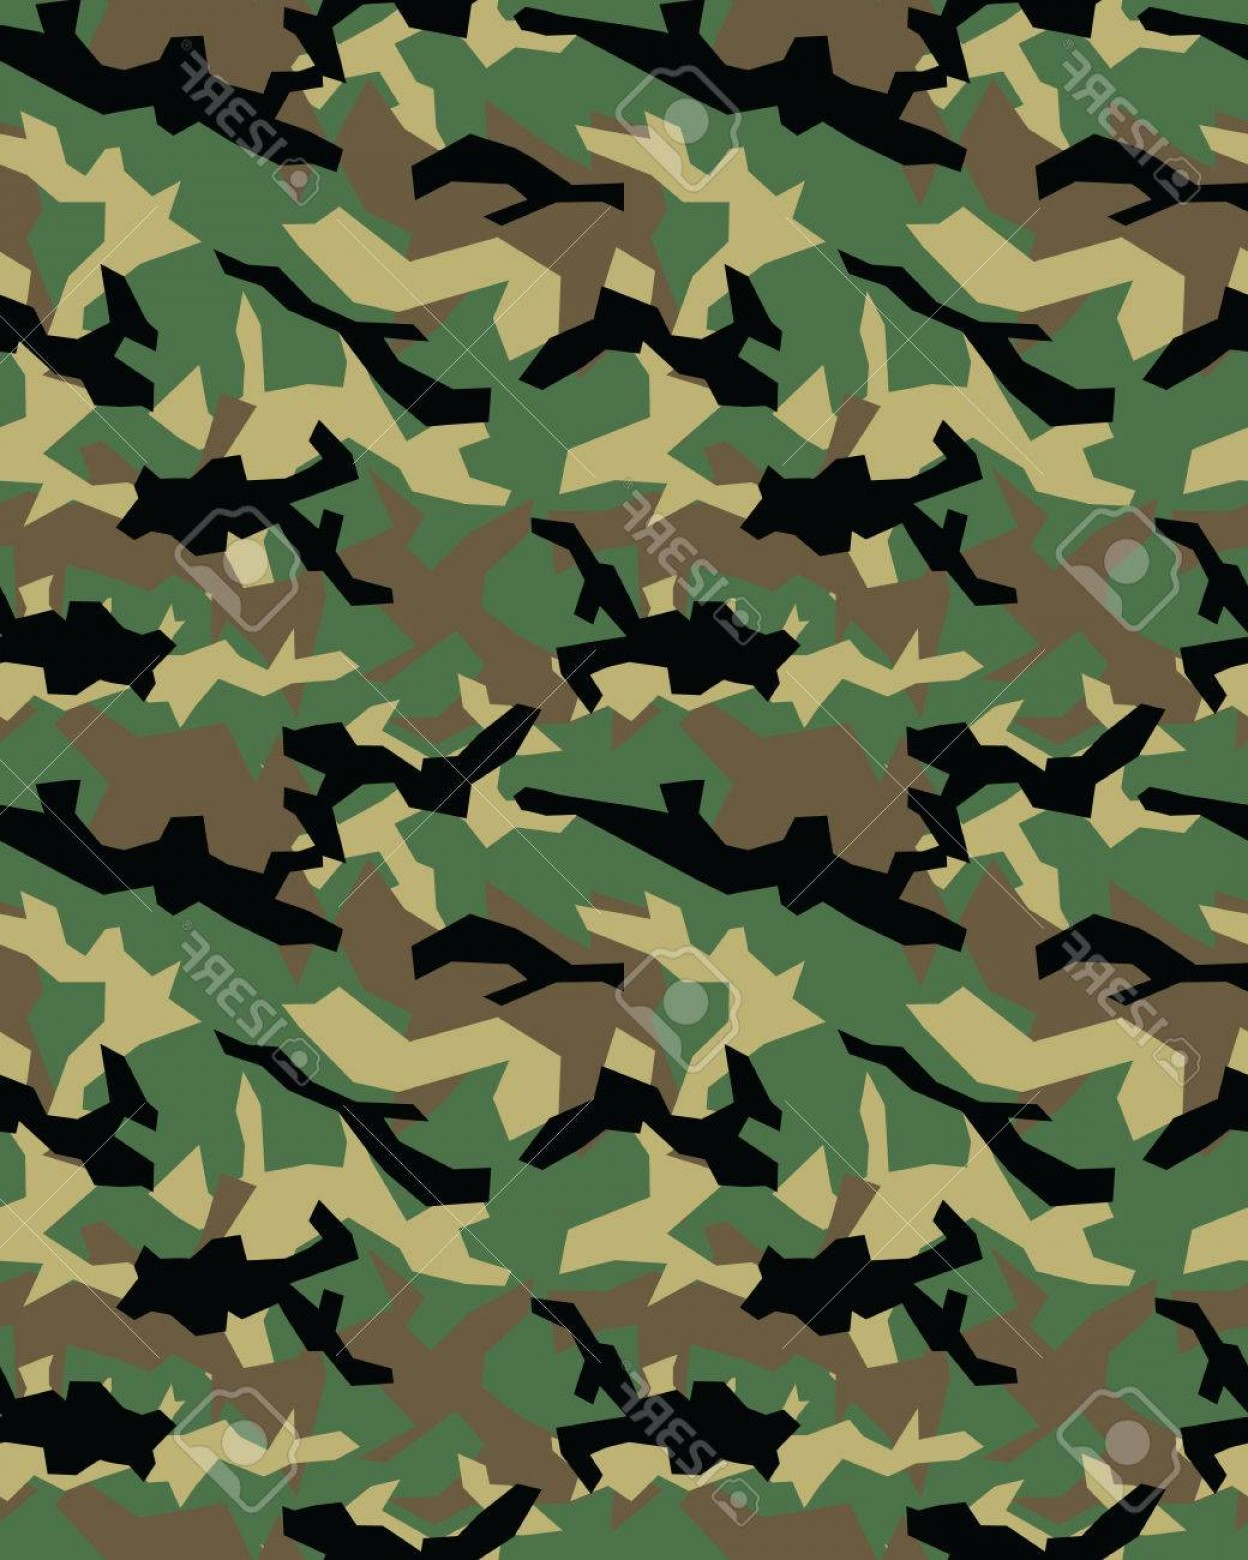 Army Camouflage Pattern Vector: Photostock Vector Fashionable Camouflage Pattern Military Print Seamless Illustration Wallpaper